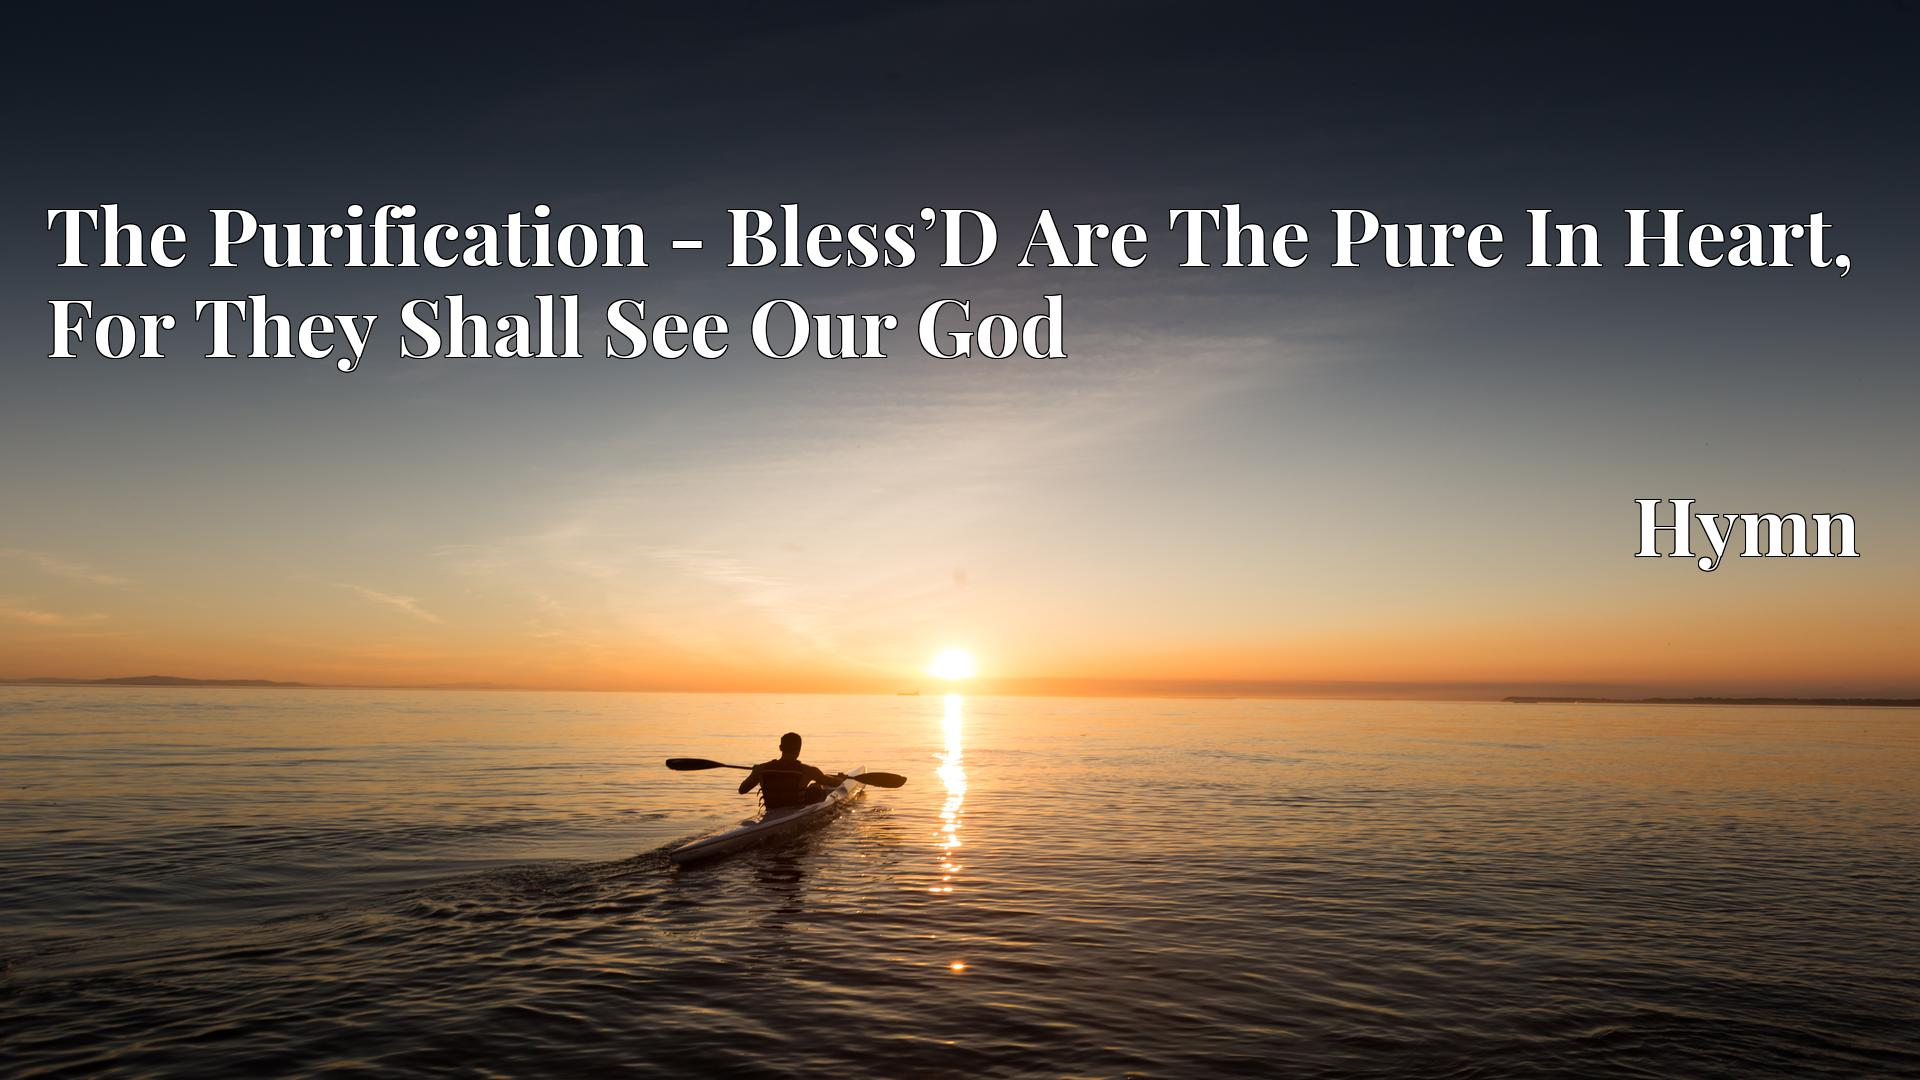 The Purification - Bless'D Are The Pure In Heart, For They Shall See Our God - Hymn